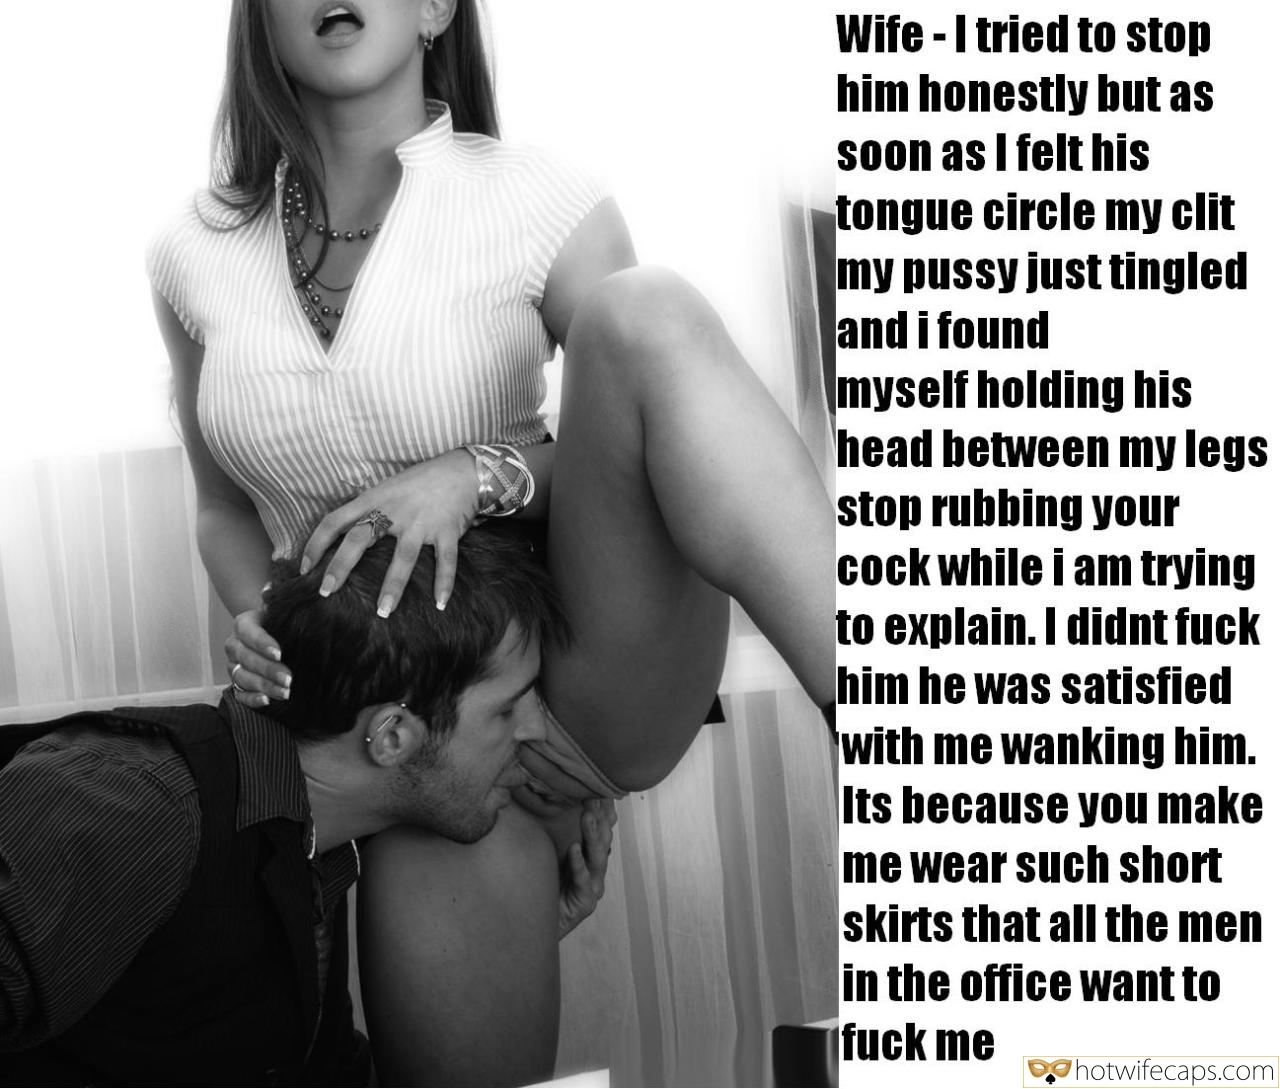 Dirty Talk Boss  hotwife caption: Wife -I tried to stop him honestly but as Soon as I felt his tongue circle my clit my pussy just tingled and i found myself holding his head between my legs stop rubbing your cock while i am trying...